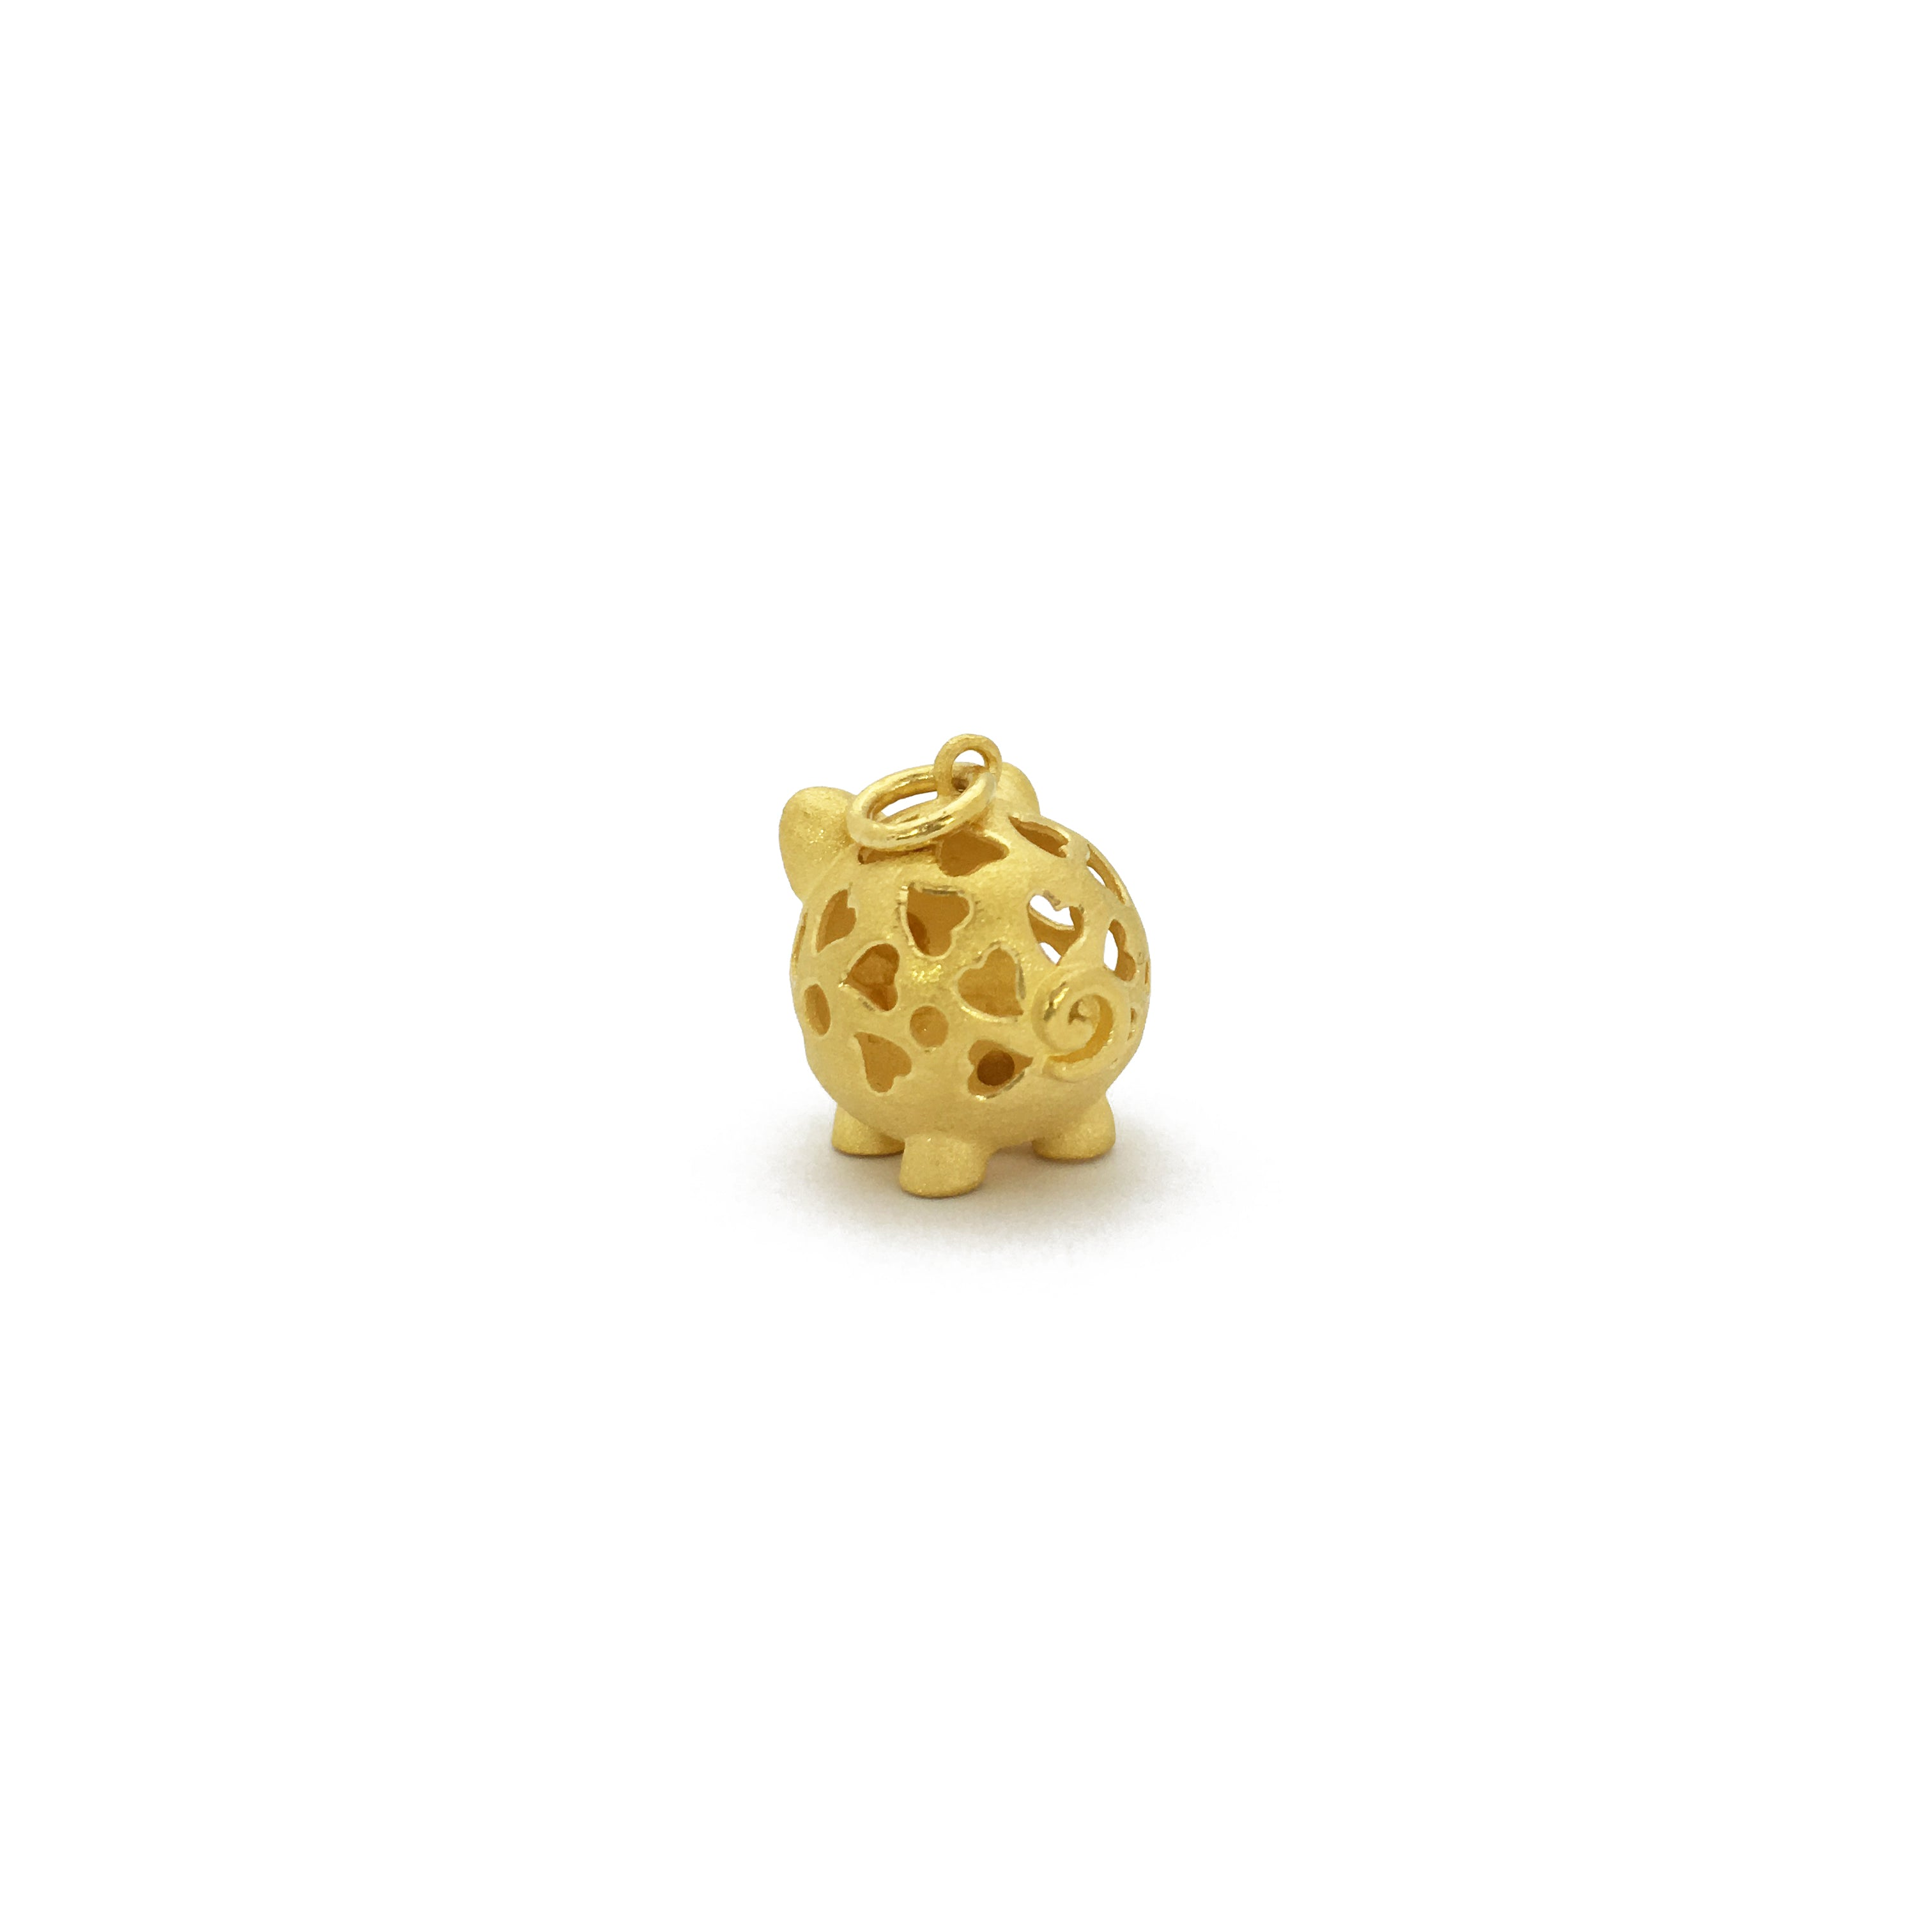 Adorable Little Pig Pendant (24K)